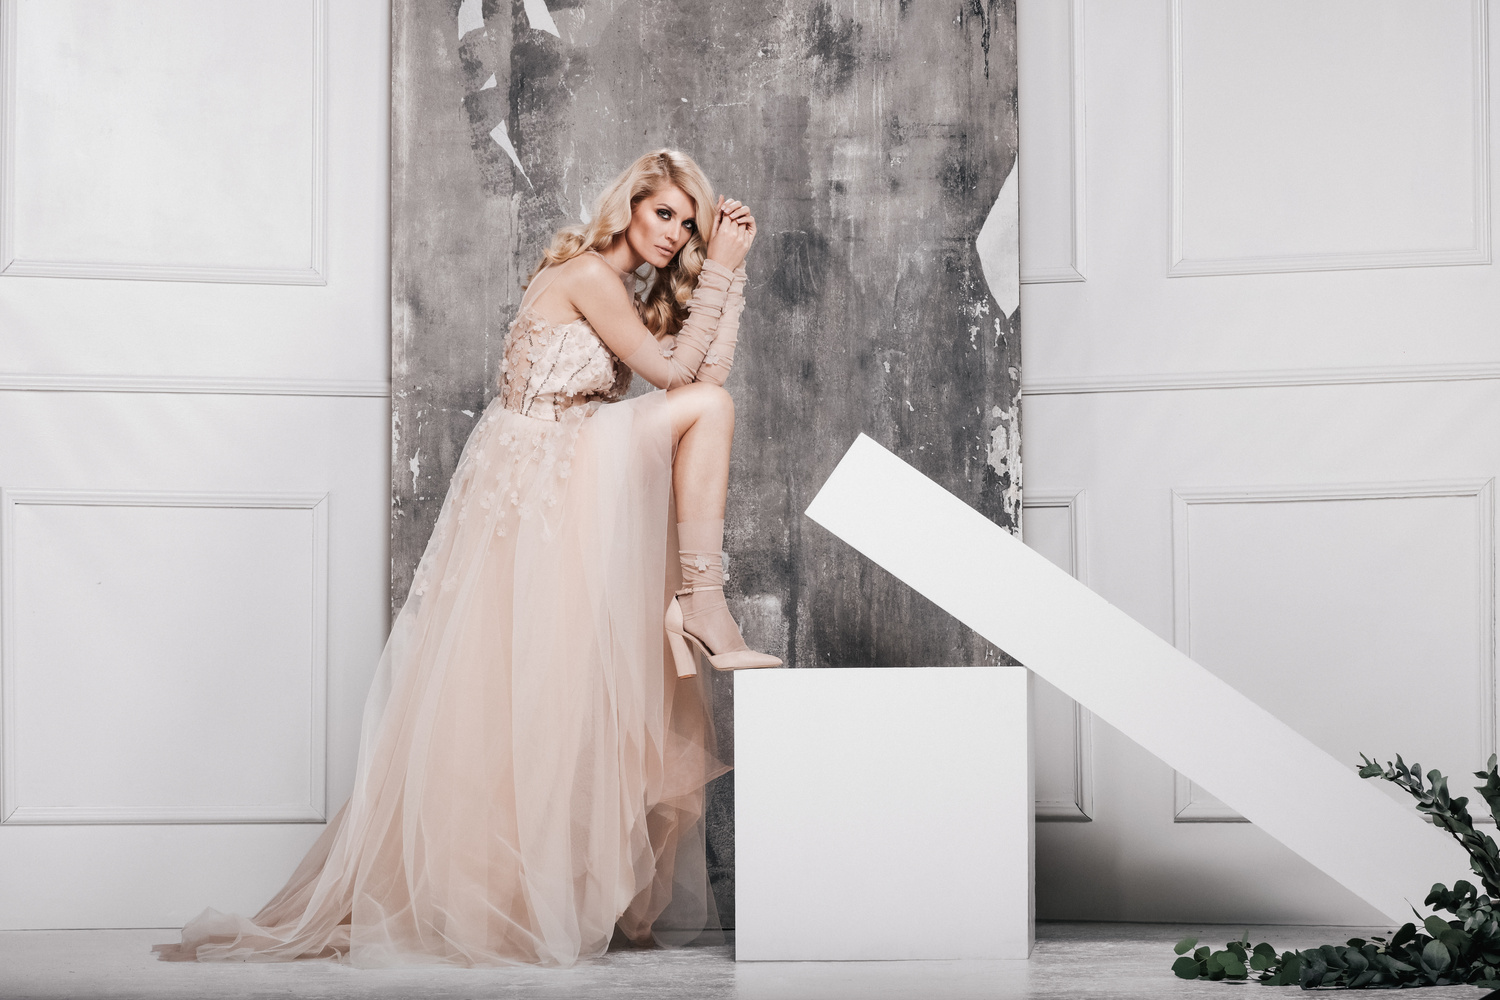 Touch of Heaven - Fashion Ad Campaign by Rale Radovic